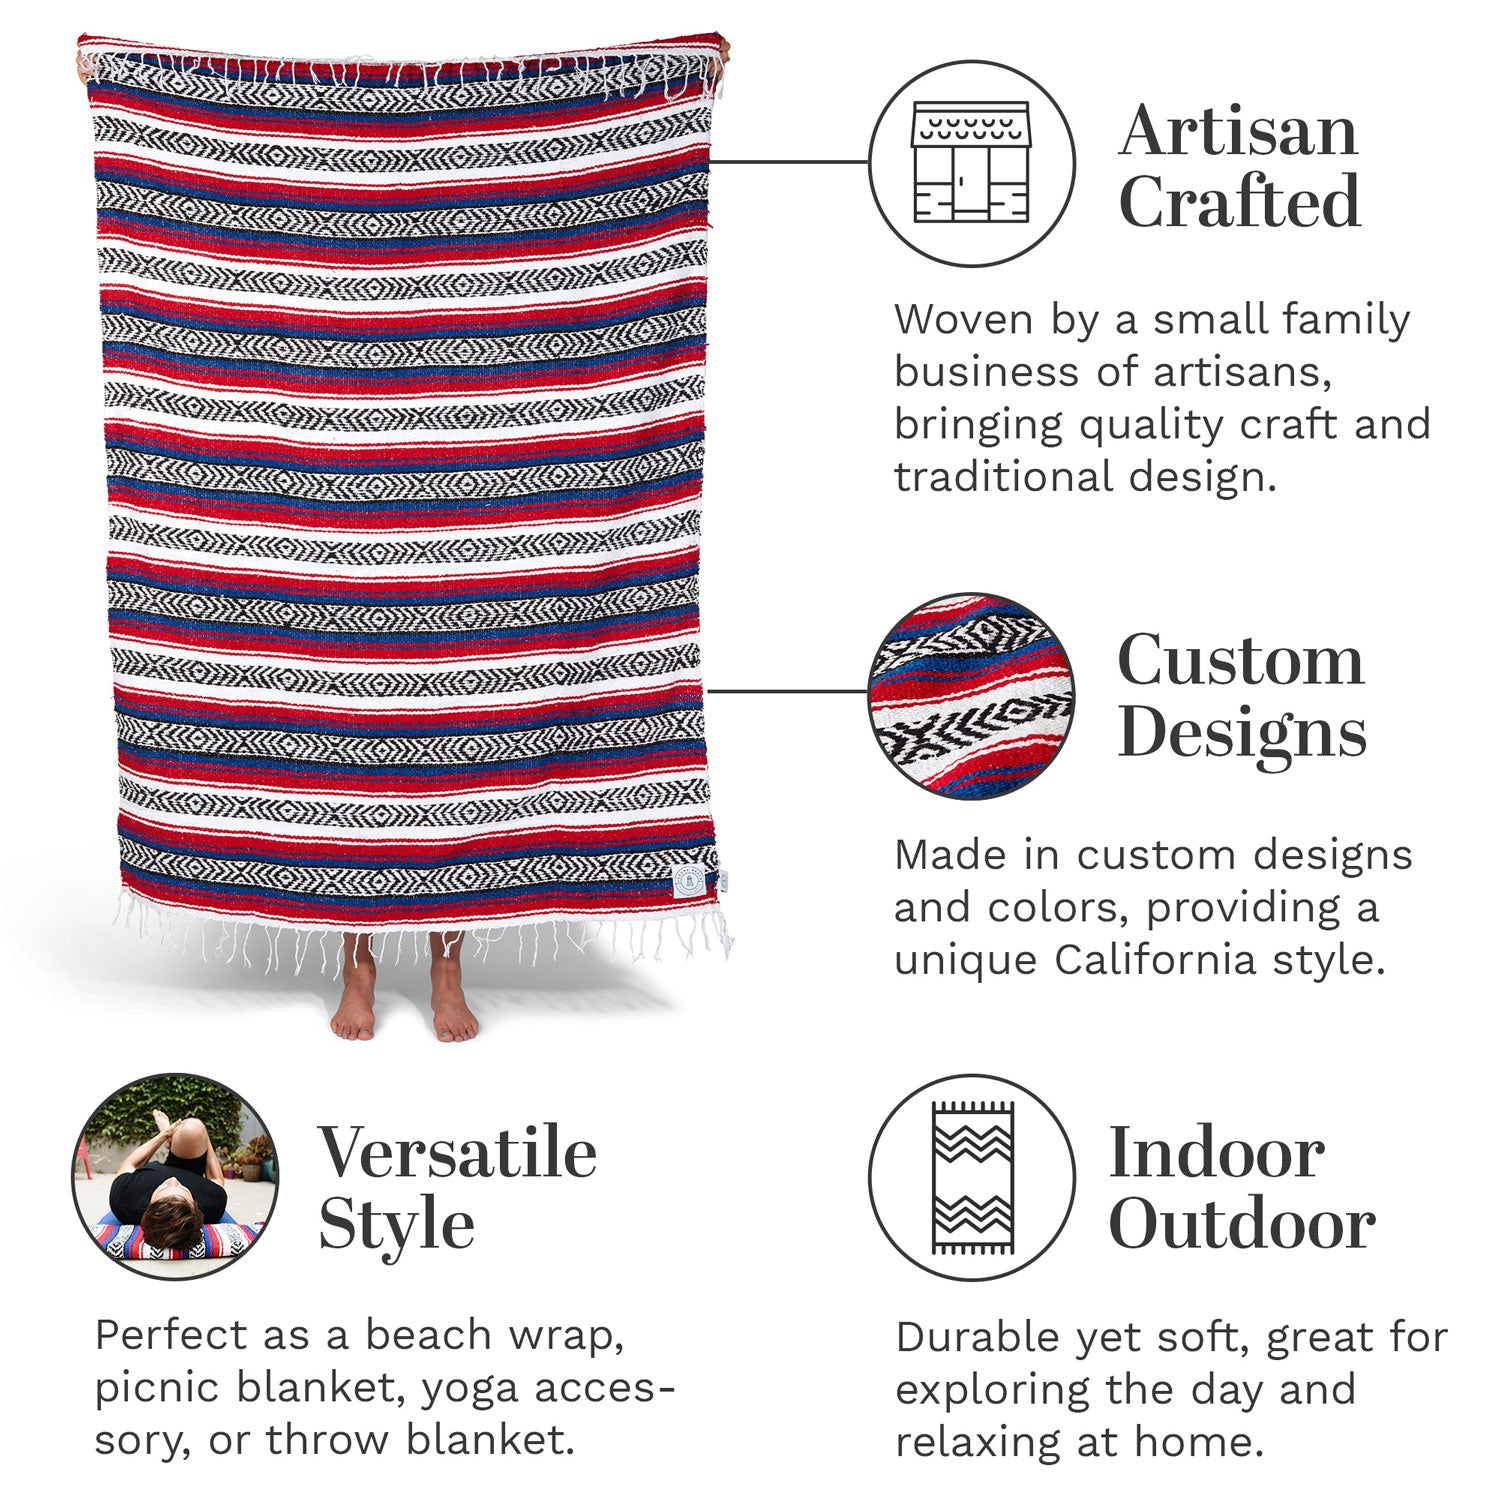 Infographic of our red, white, and blue Mexican blanket highlighting its versatile style and artisan craftsmanship.